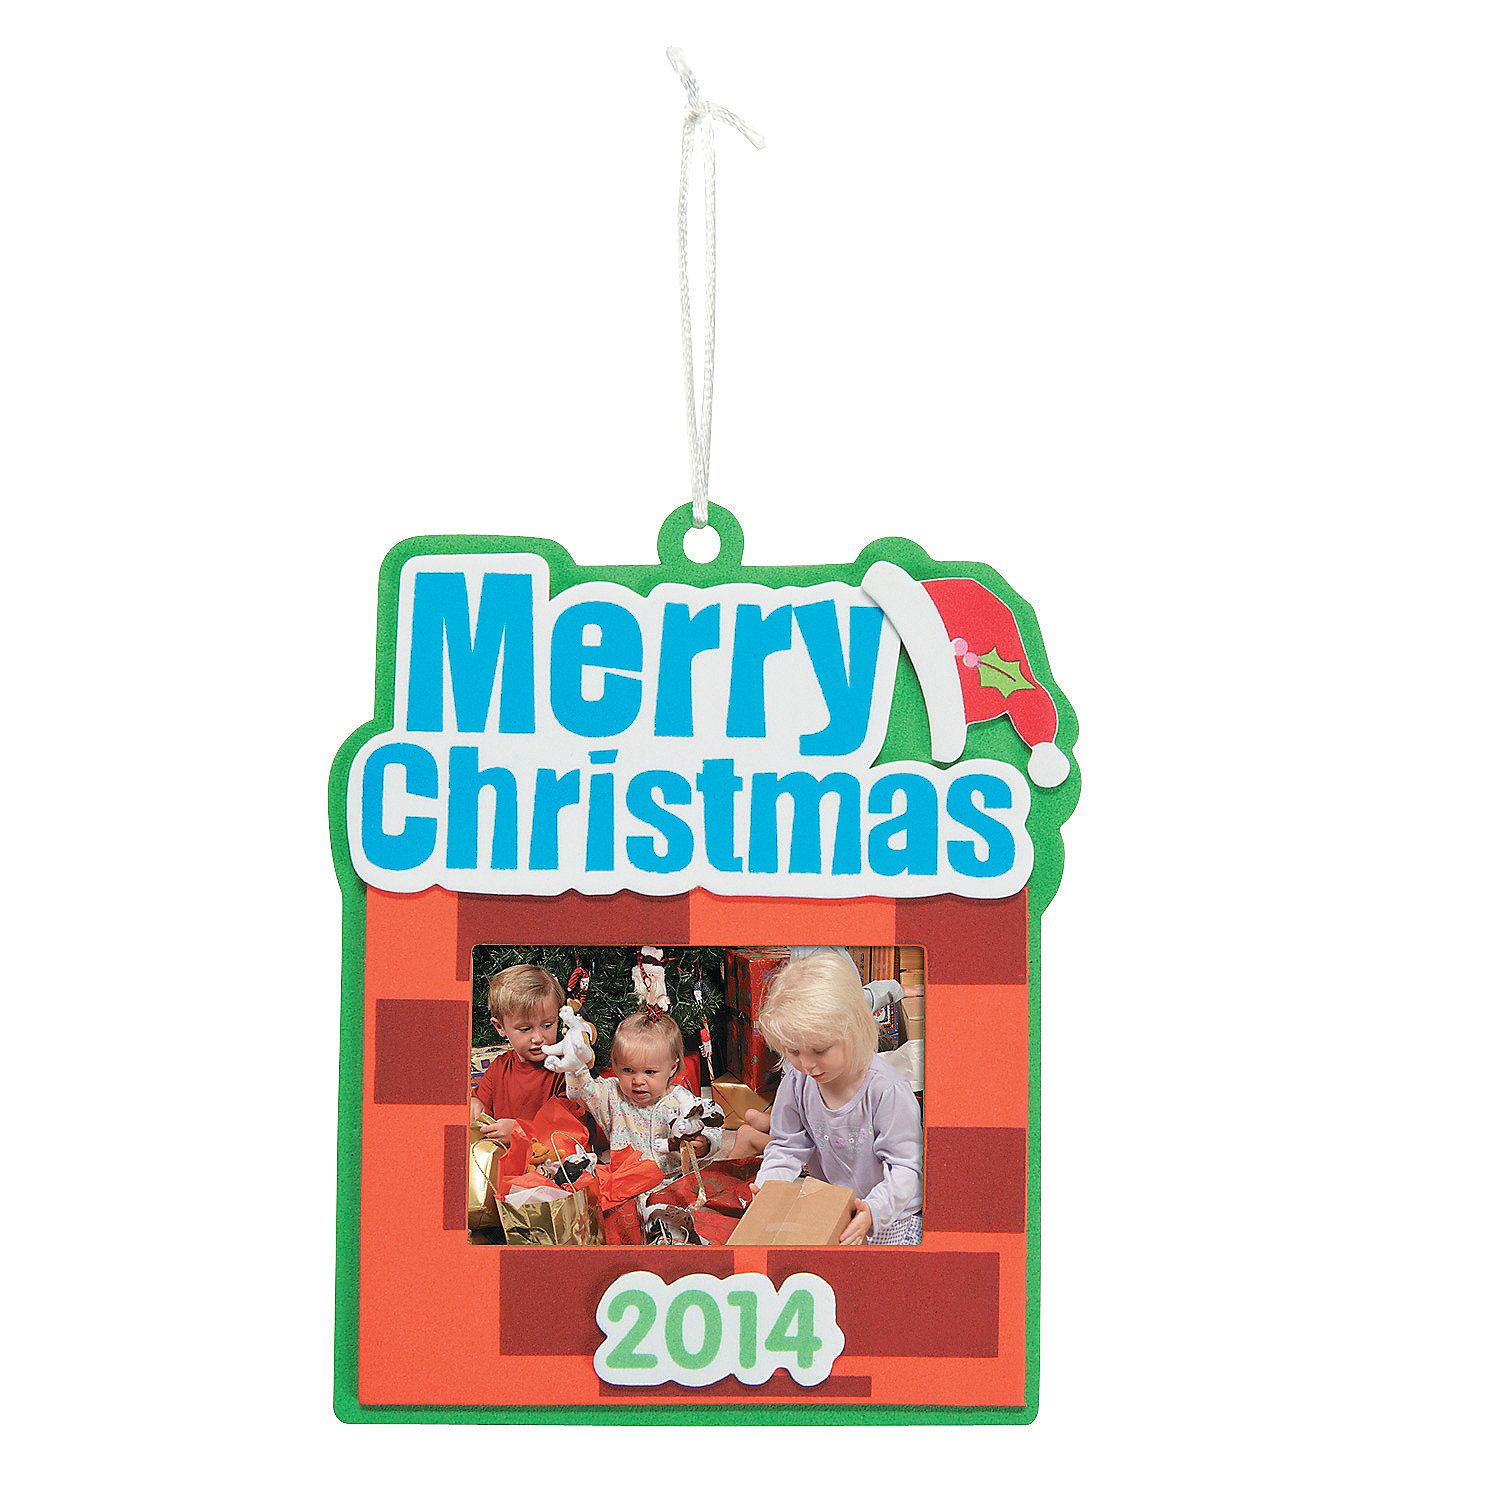 The Merry Christmas Christmas Picture Ornament Craft Kit Can Put